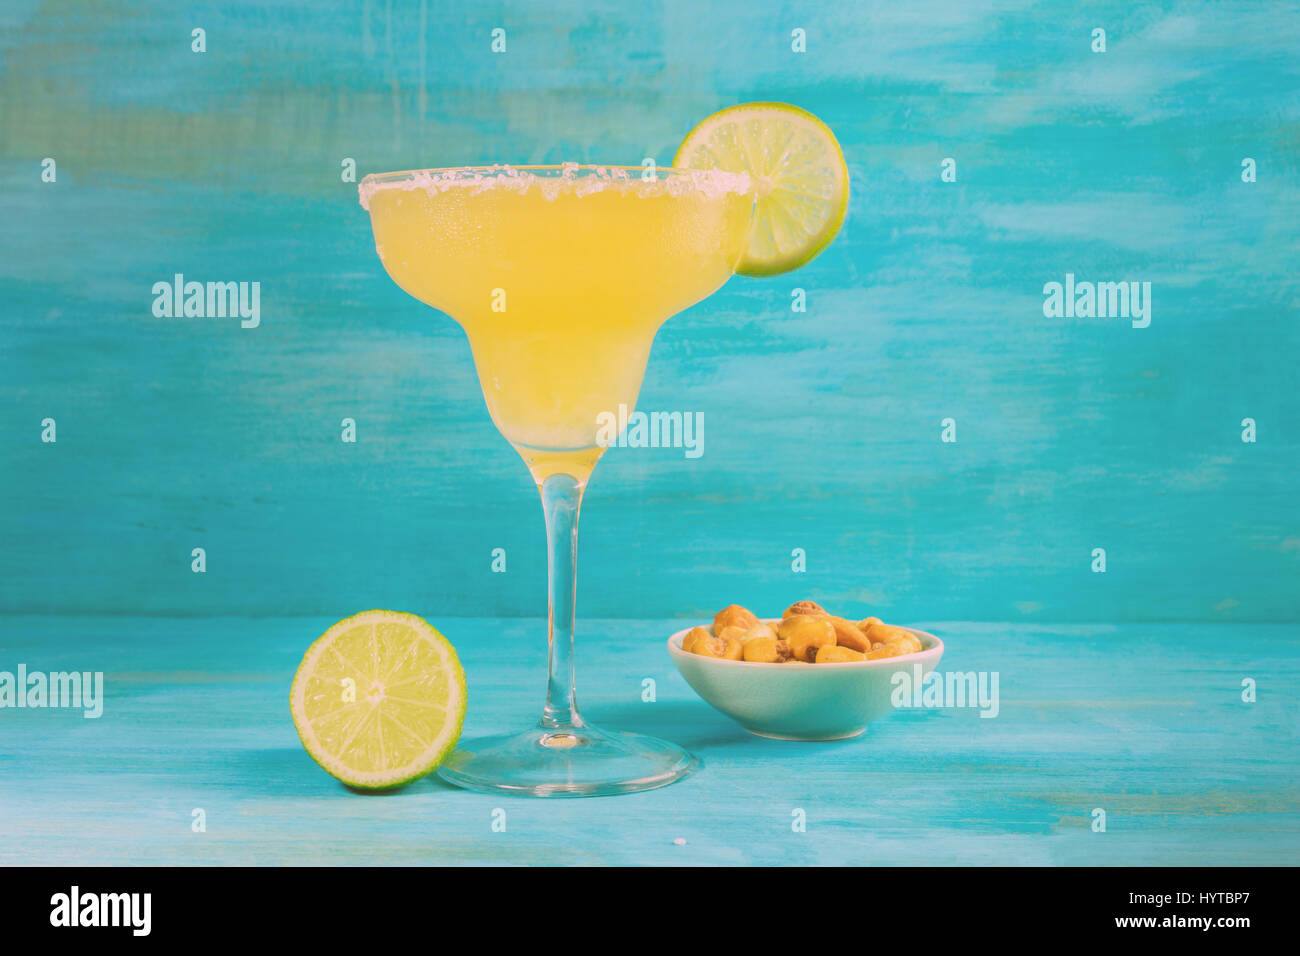 Toned Margarita cocktail photo with copyspace - Stock Image